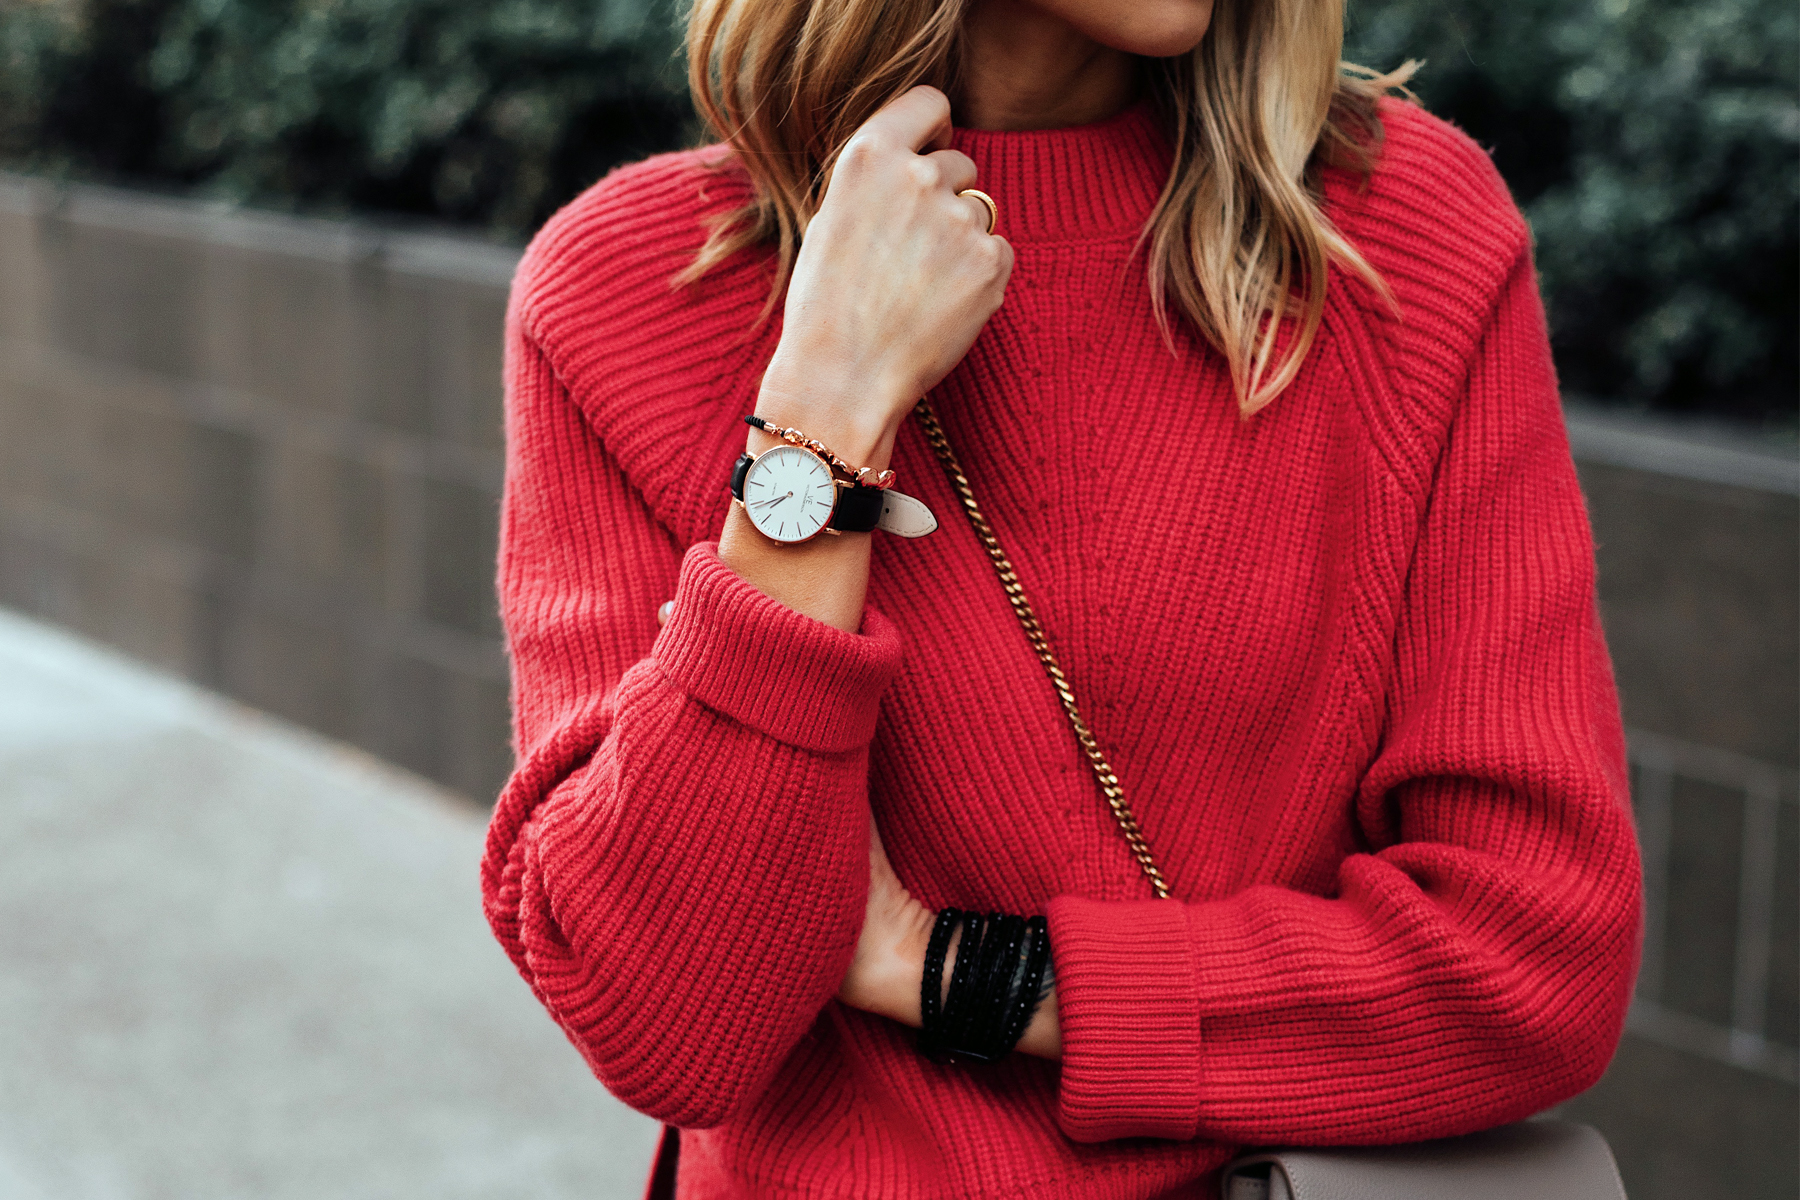 Blonde Woman Wearing AllSaints Red Sweater Victoria Emerson Black Rose Gold Watch Rose Gold Beaded Bracelet Victoria Emerson Beaded Black Wrap Bracelet Fashion Jackson San Diego Fashion Blogger Street Style